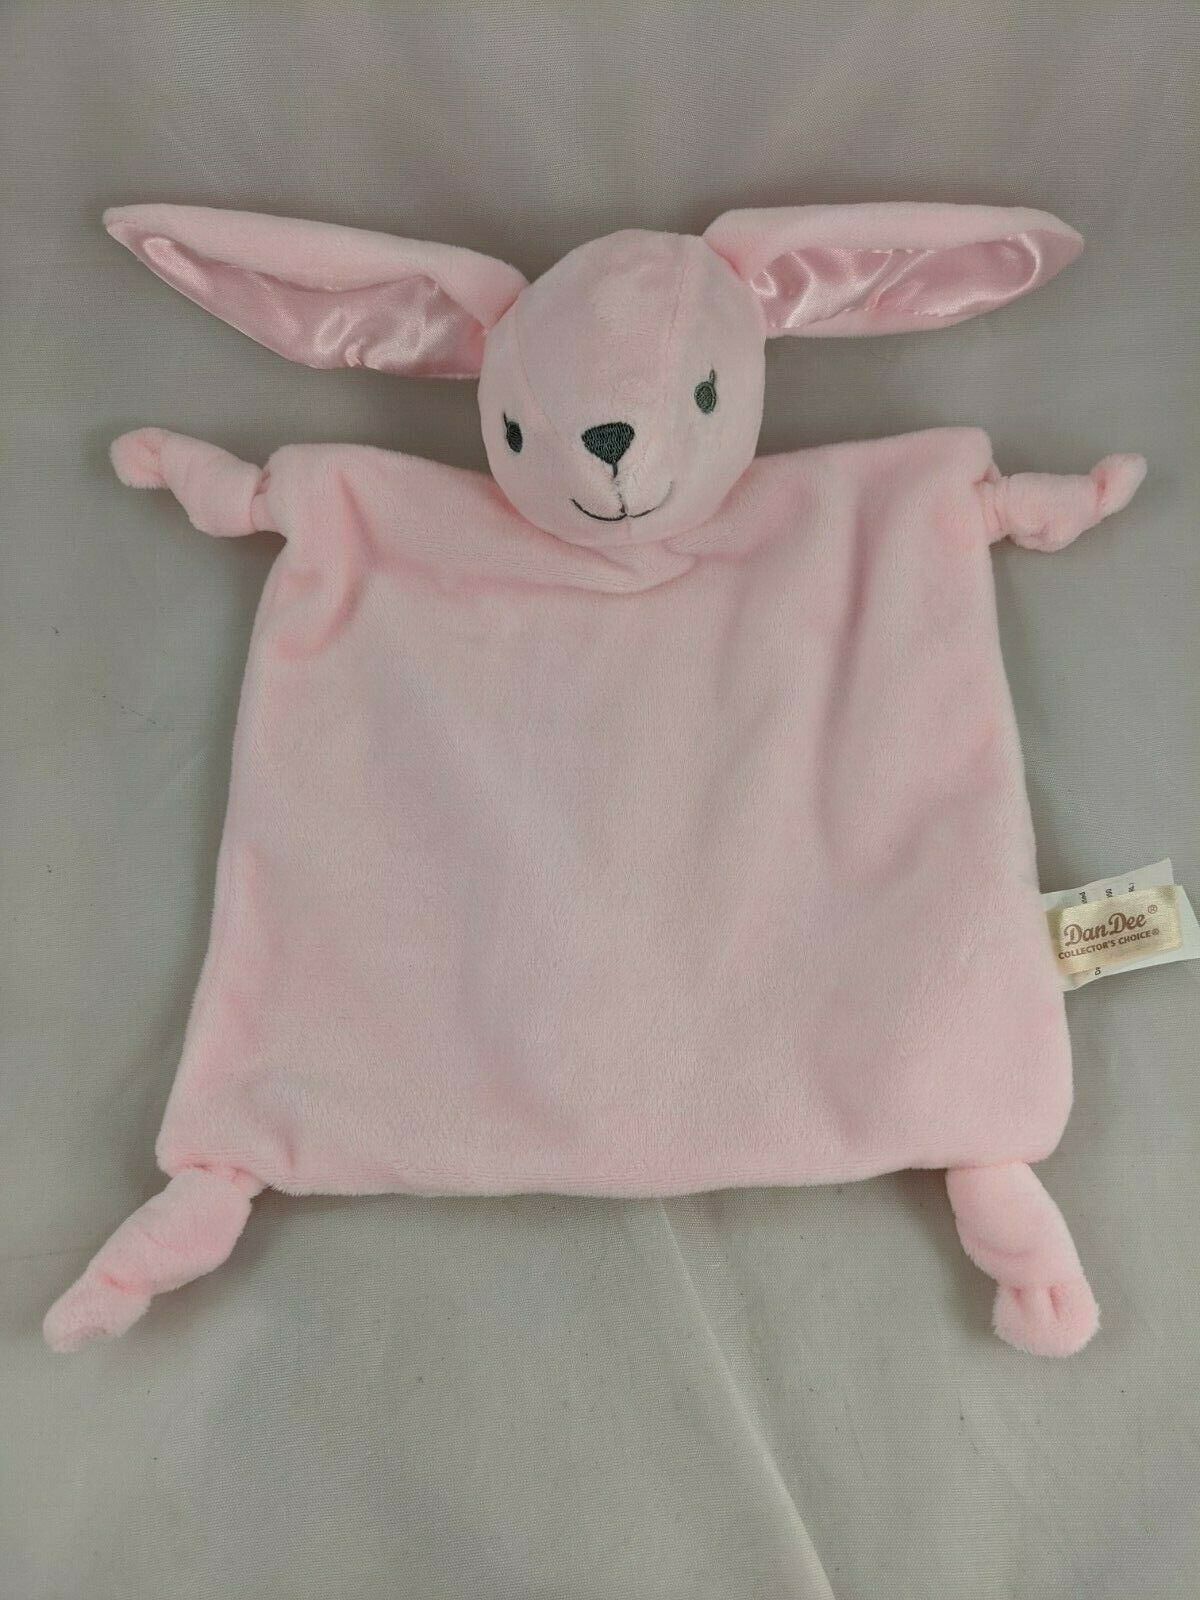 Primary image for Dan Dee Pink Rabbit Lovey Bunny Security Blanket Plush Rattle Stuffed Animal Toy